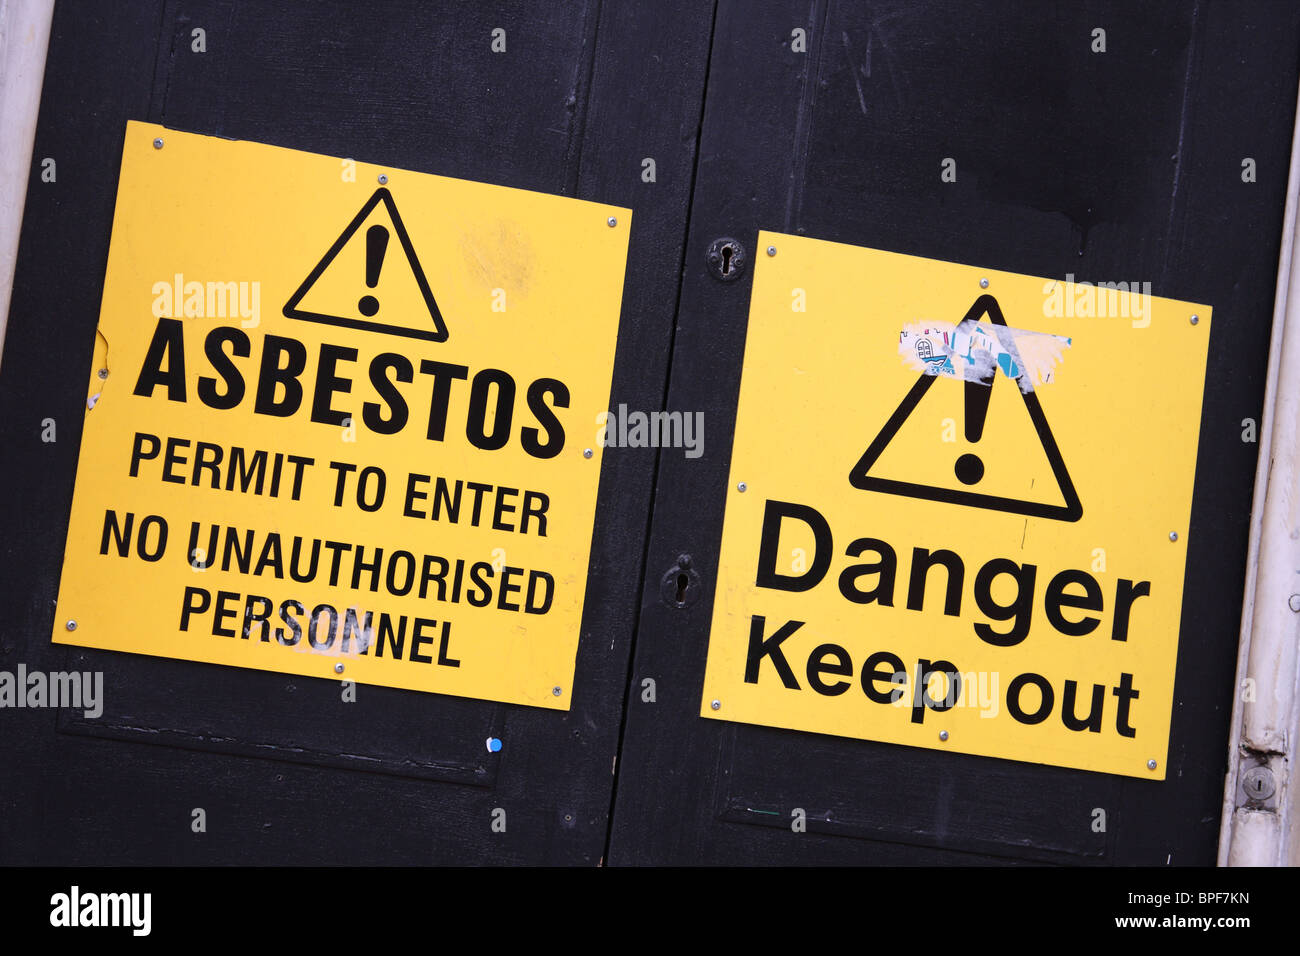 Asbestos warning signs on a derelict building in a U.K. city. - Stock Image